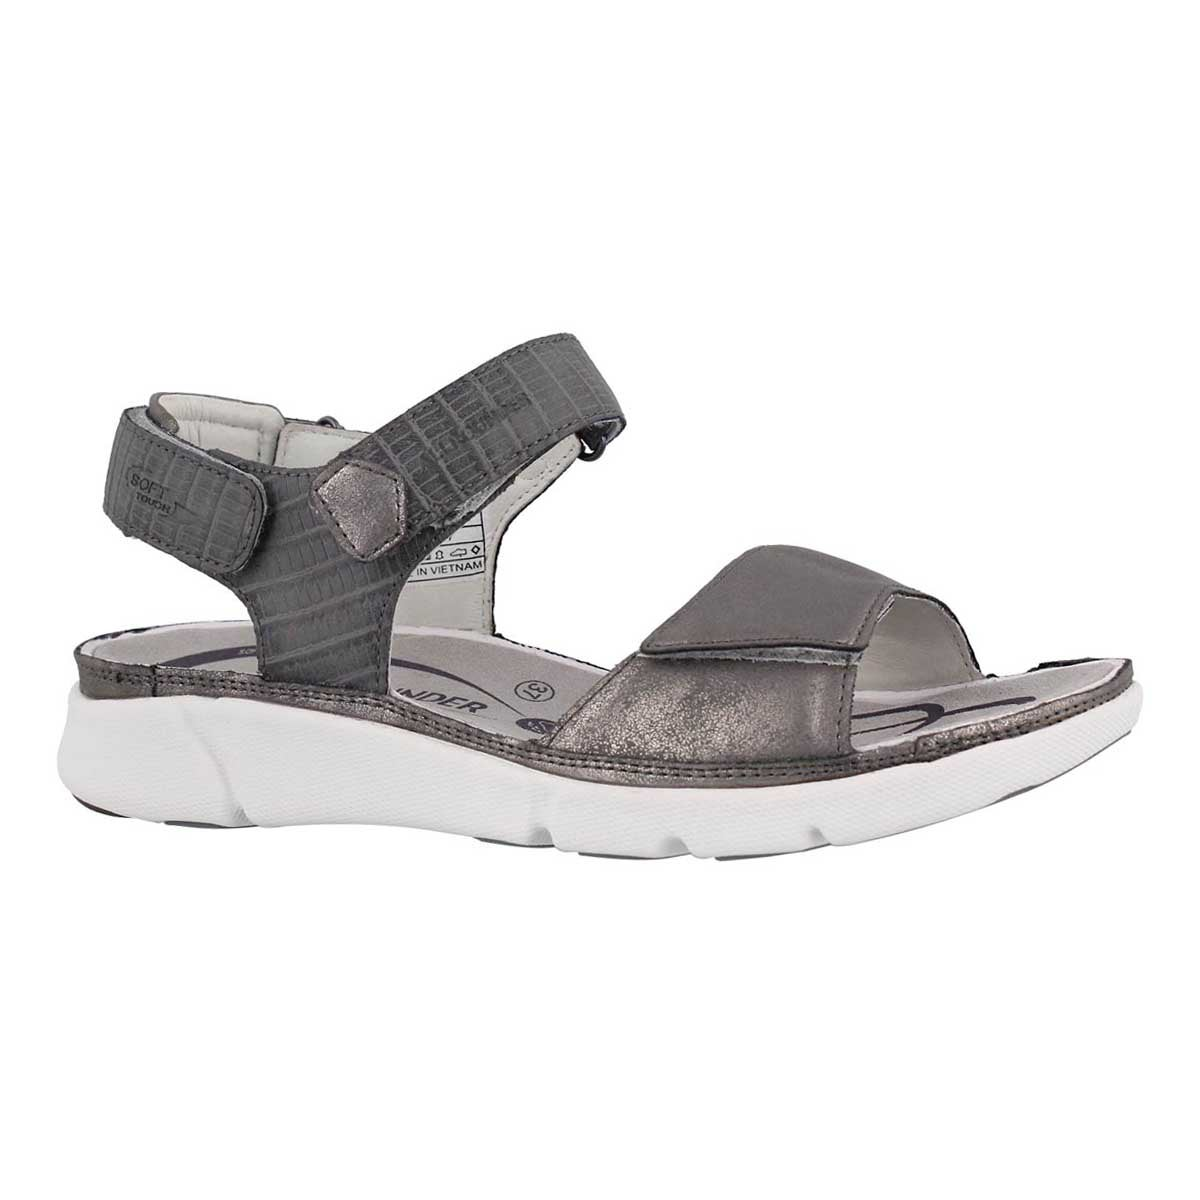 Women's TABASA pewter casual sandals